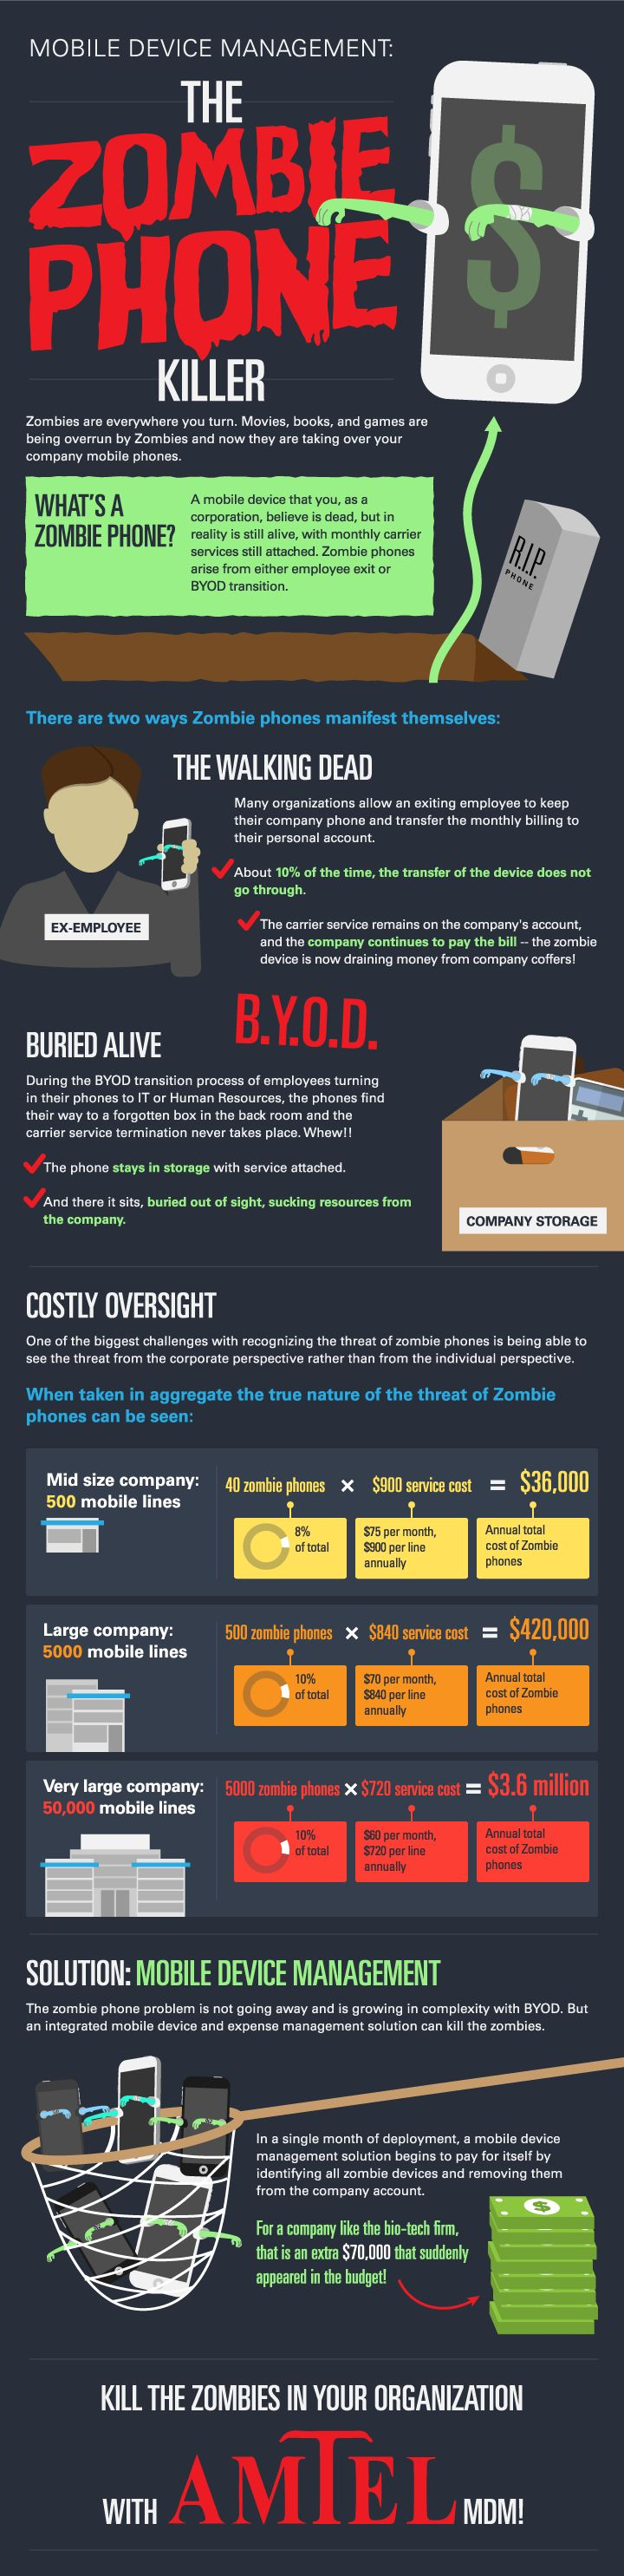 Mobile Device Management: The Zombie Phone Killer #Infographic #Zombies